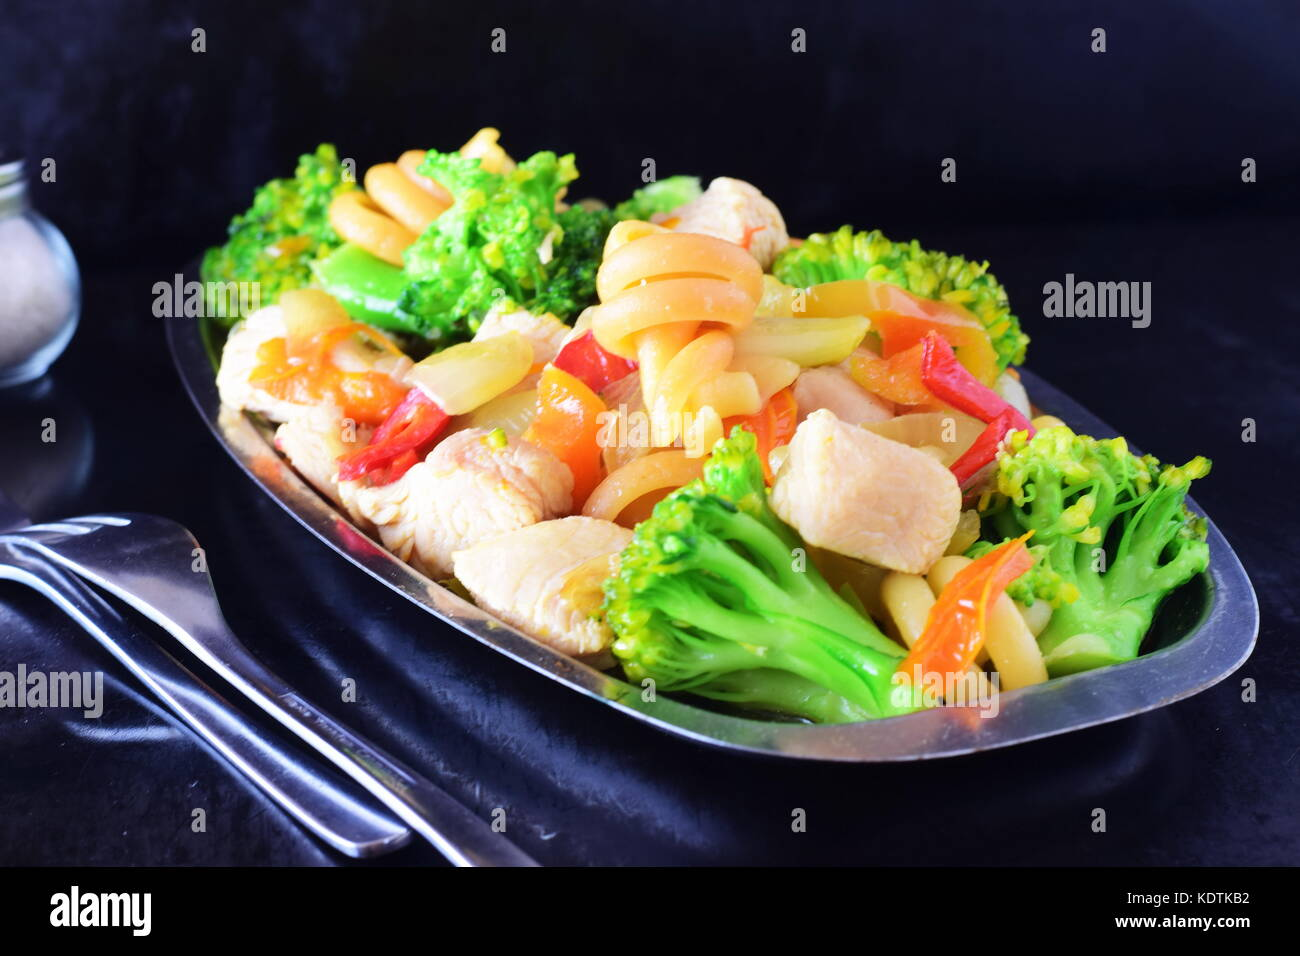 Stir fried chicken fillet with vegetables and pasta on a metal tray on a black abstract background - Stock Image